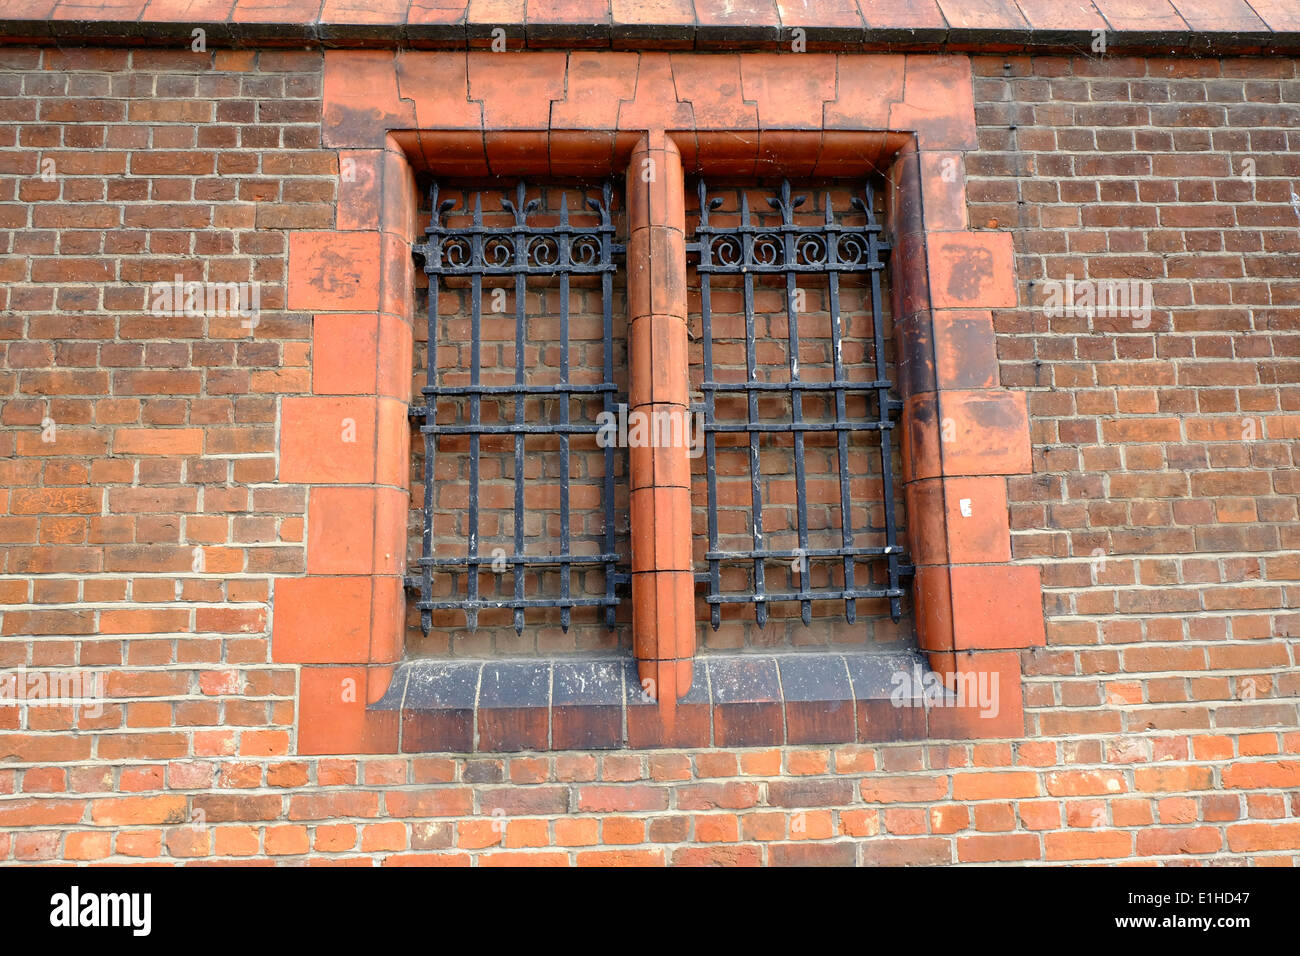 Iron bars across the bricked up window of a Jail at Bedford County